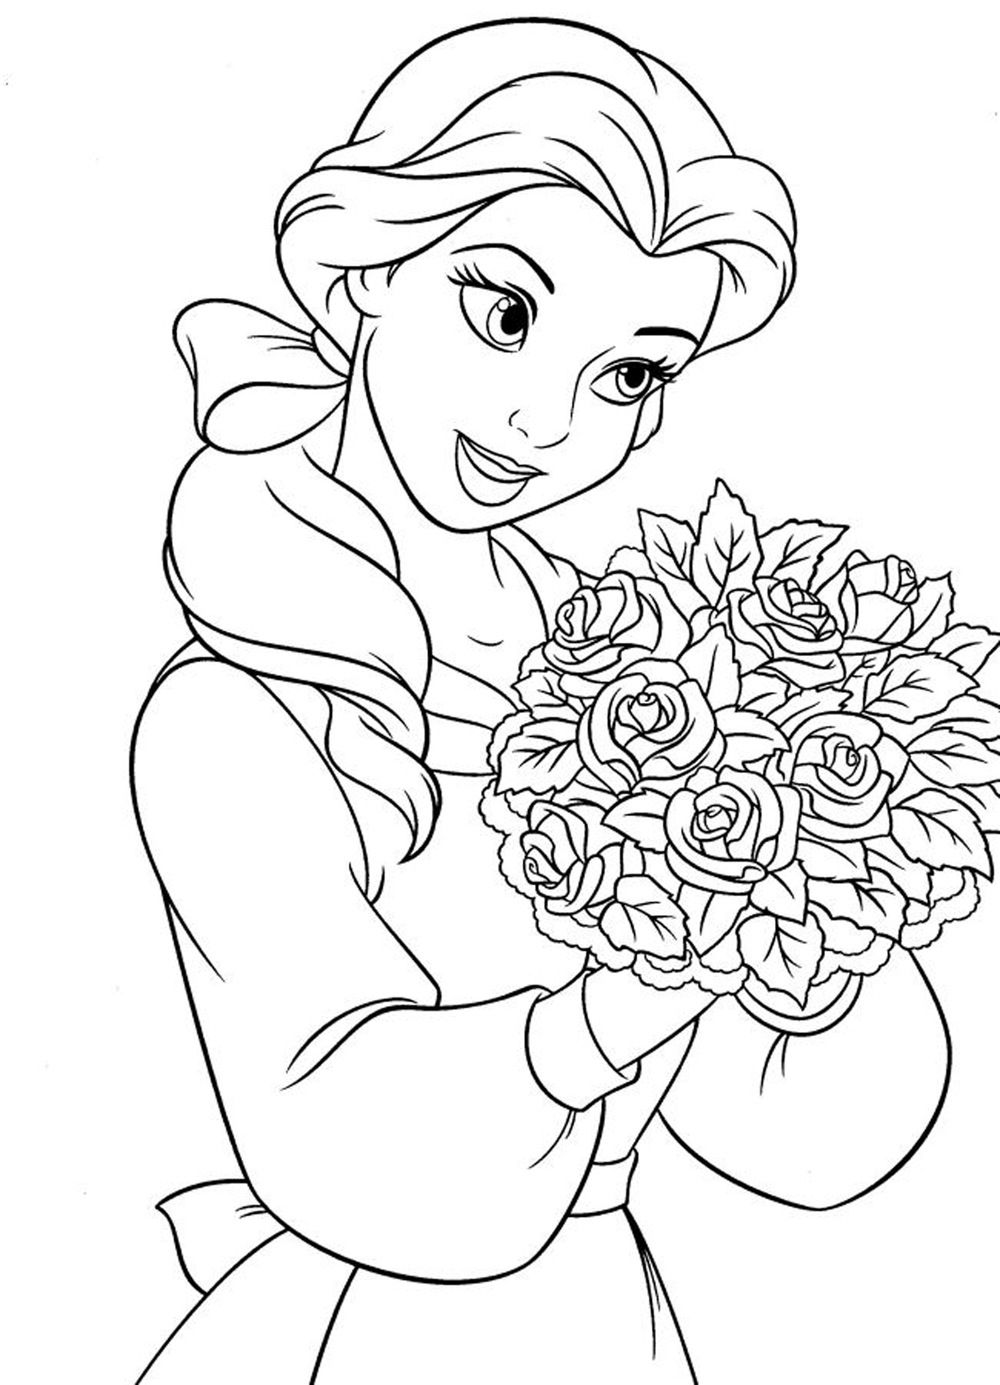 coloring disney characters pictures to colour cartoon character coloring pages to download and print for colour disney pictures to coloring characters